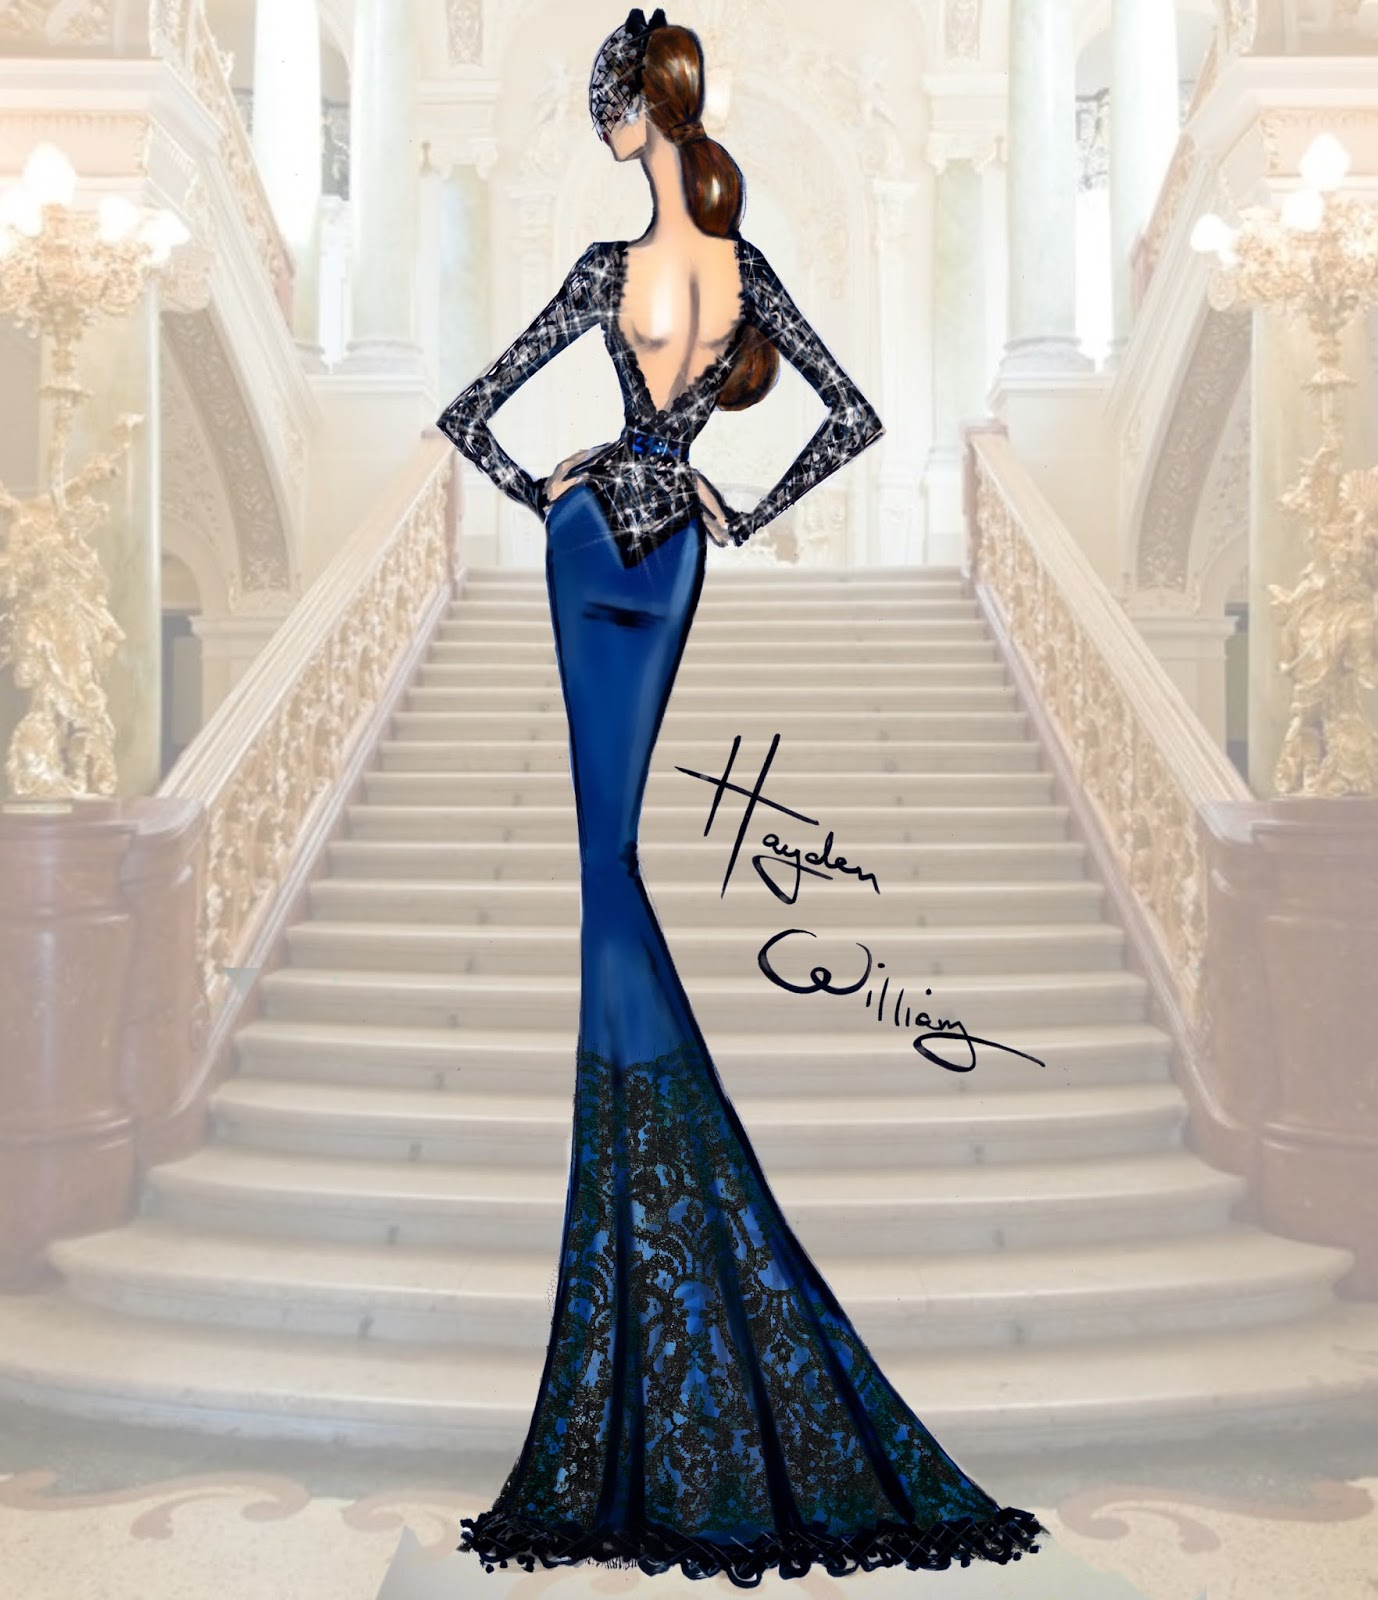 Hayden williams fashion illustrations hayden williams for Haute couture fashion